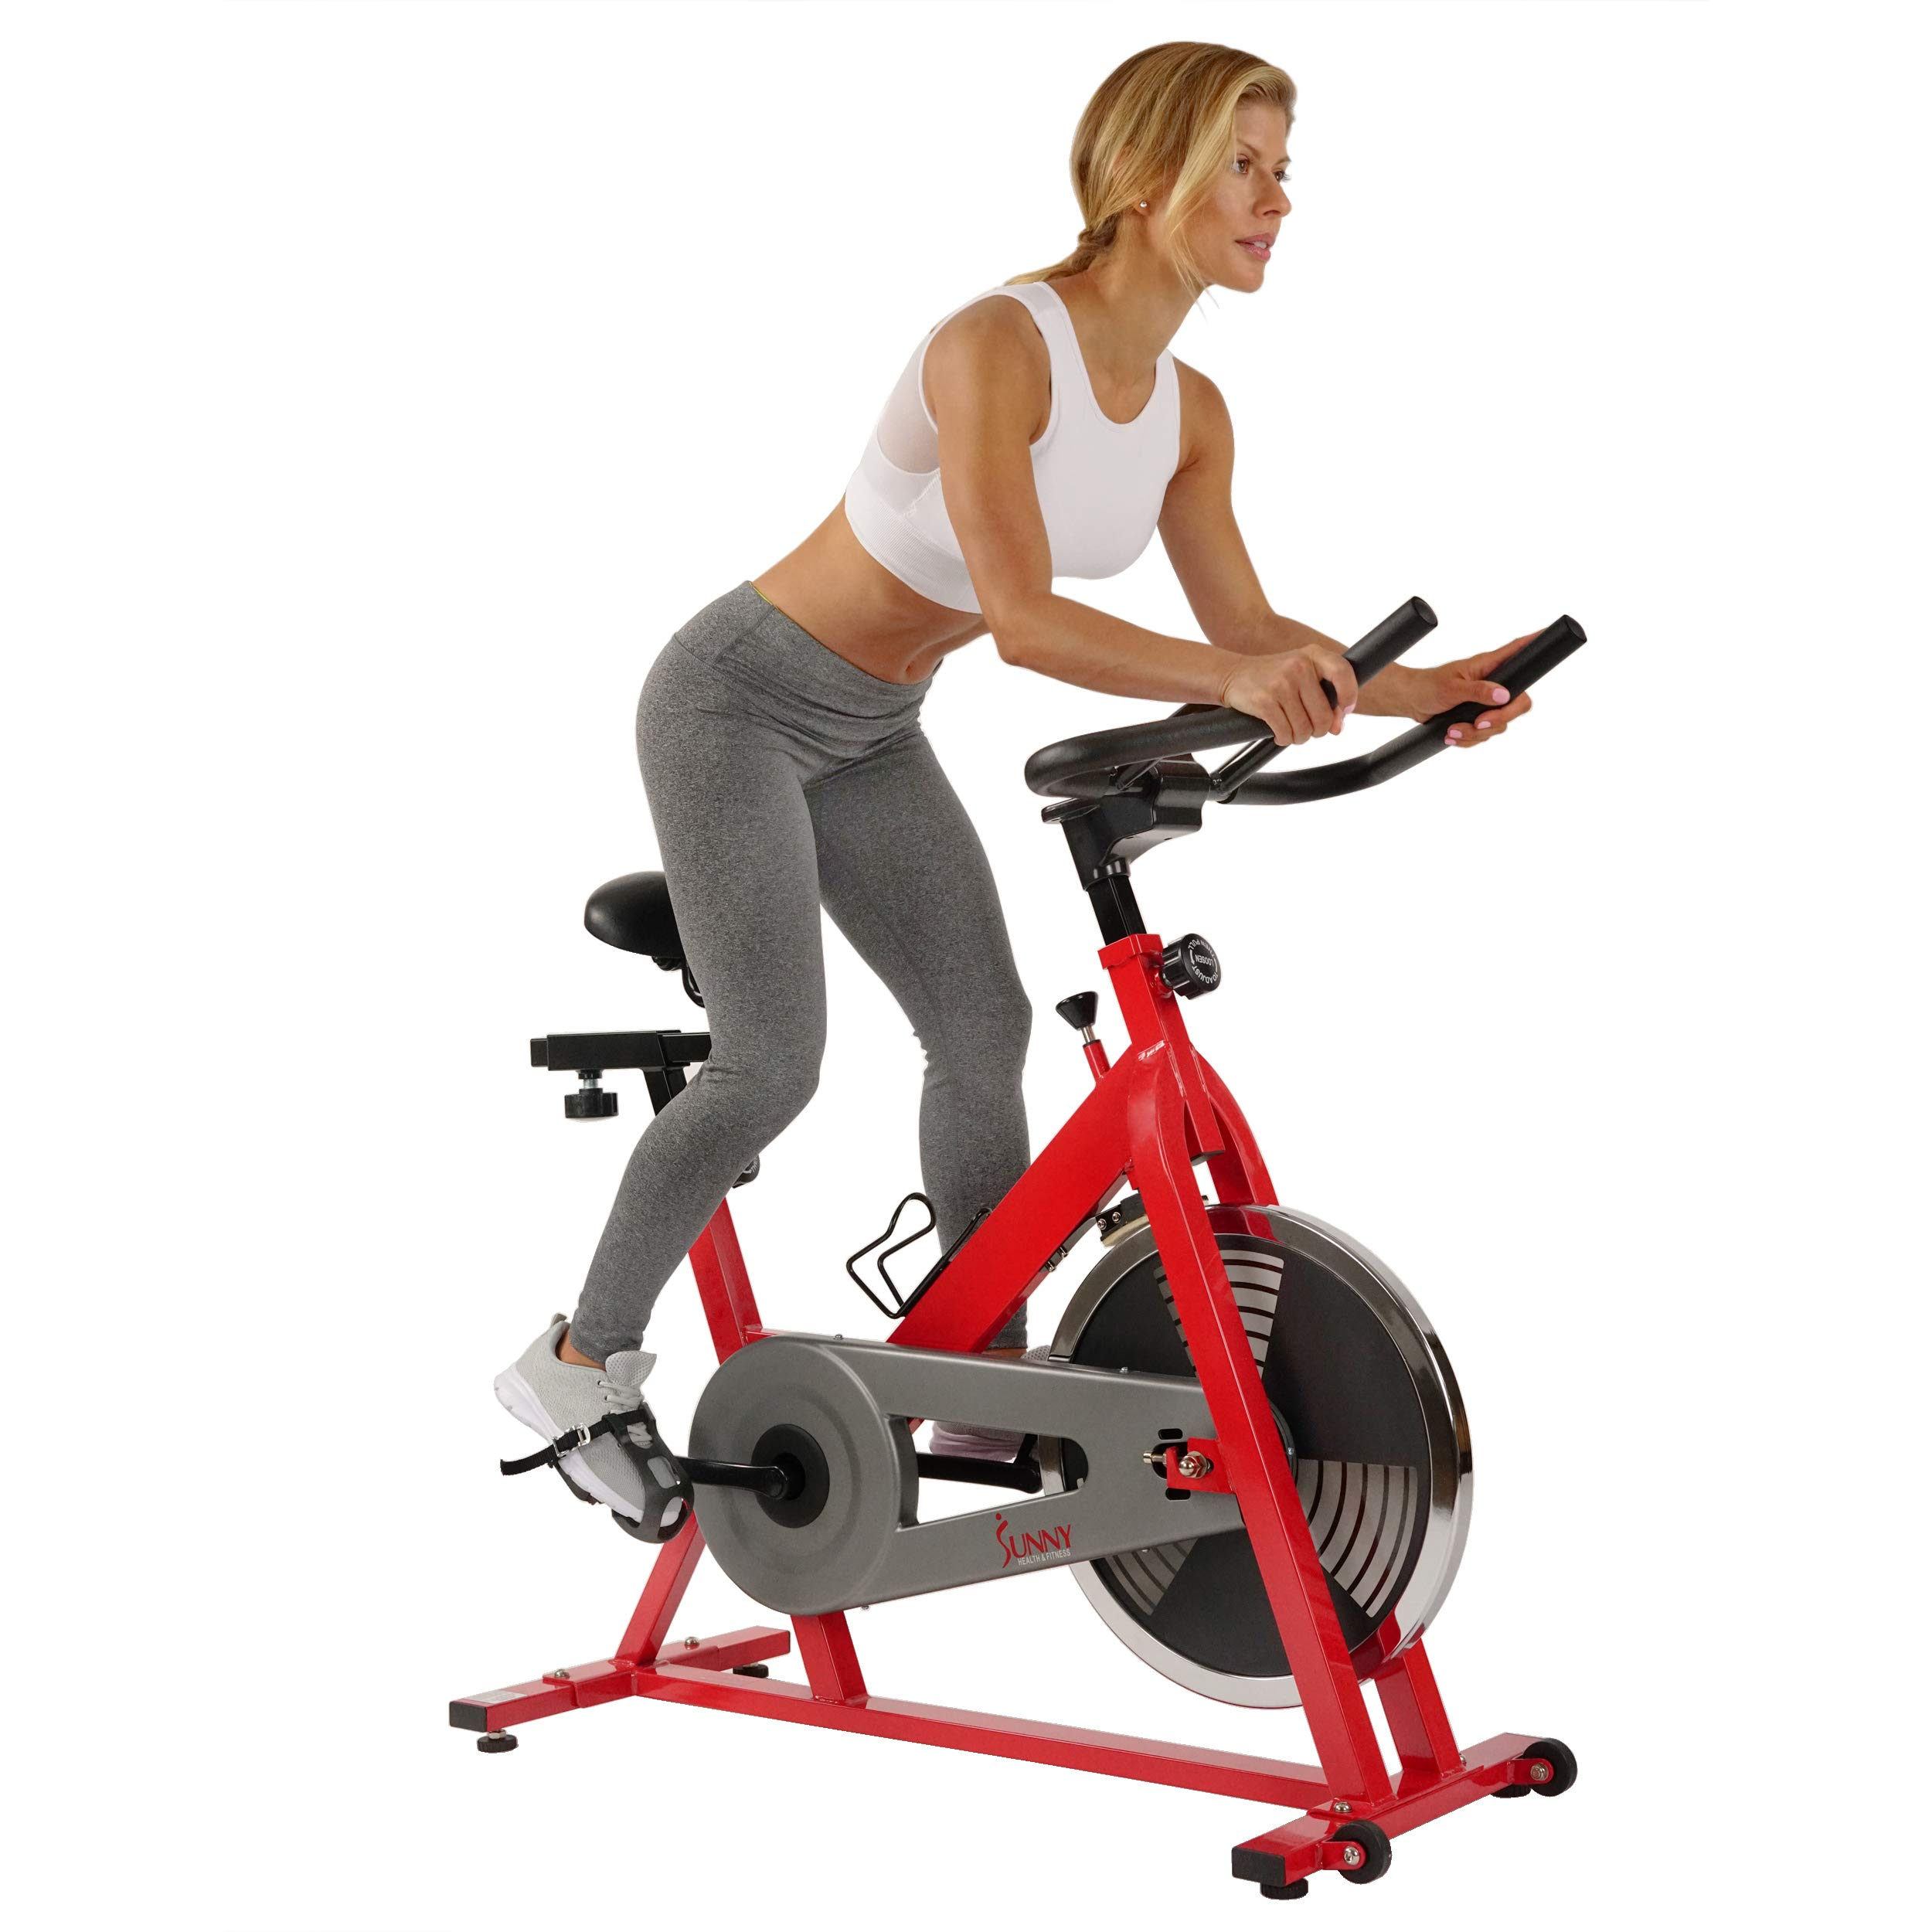 Sunny Health & Fitness Spin Bike Indoor Cycling Exercise Spinning Bike by Sunny Health & Fitness